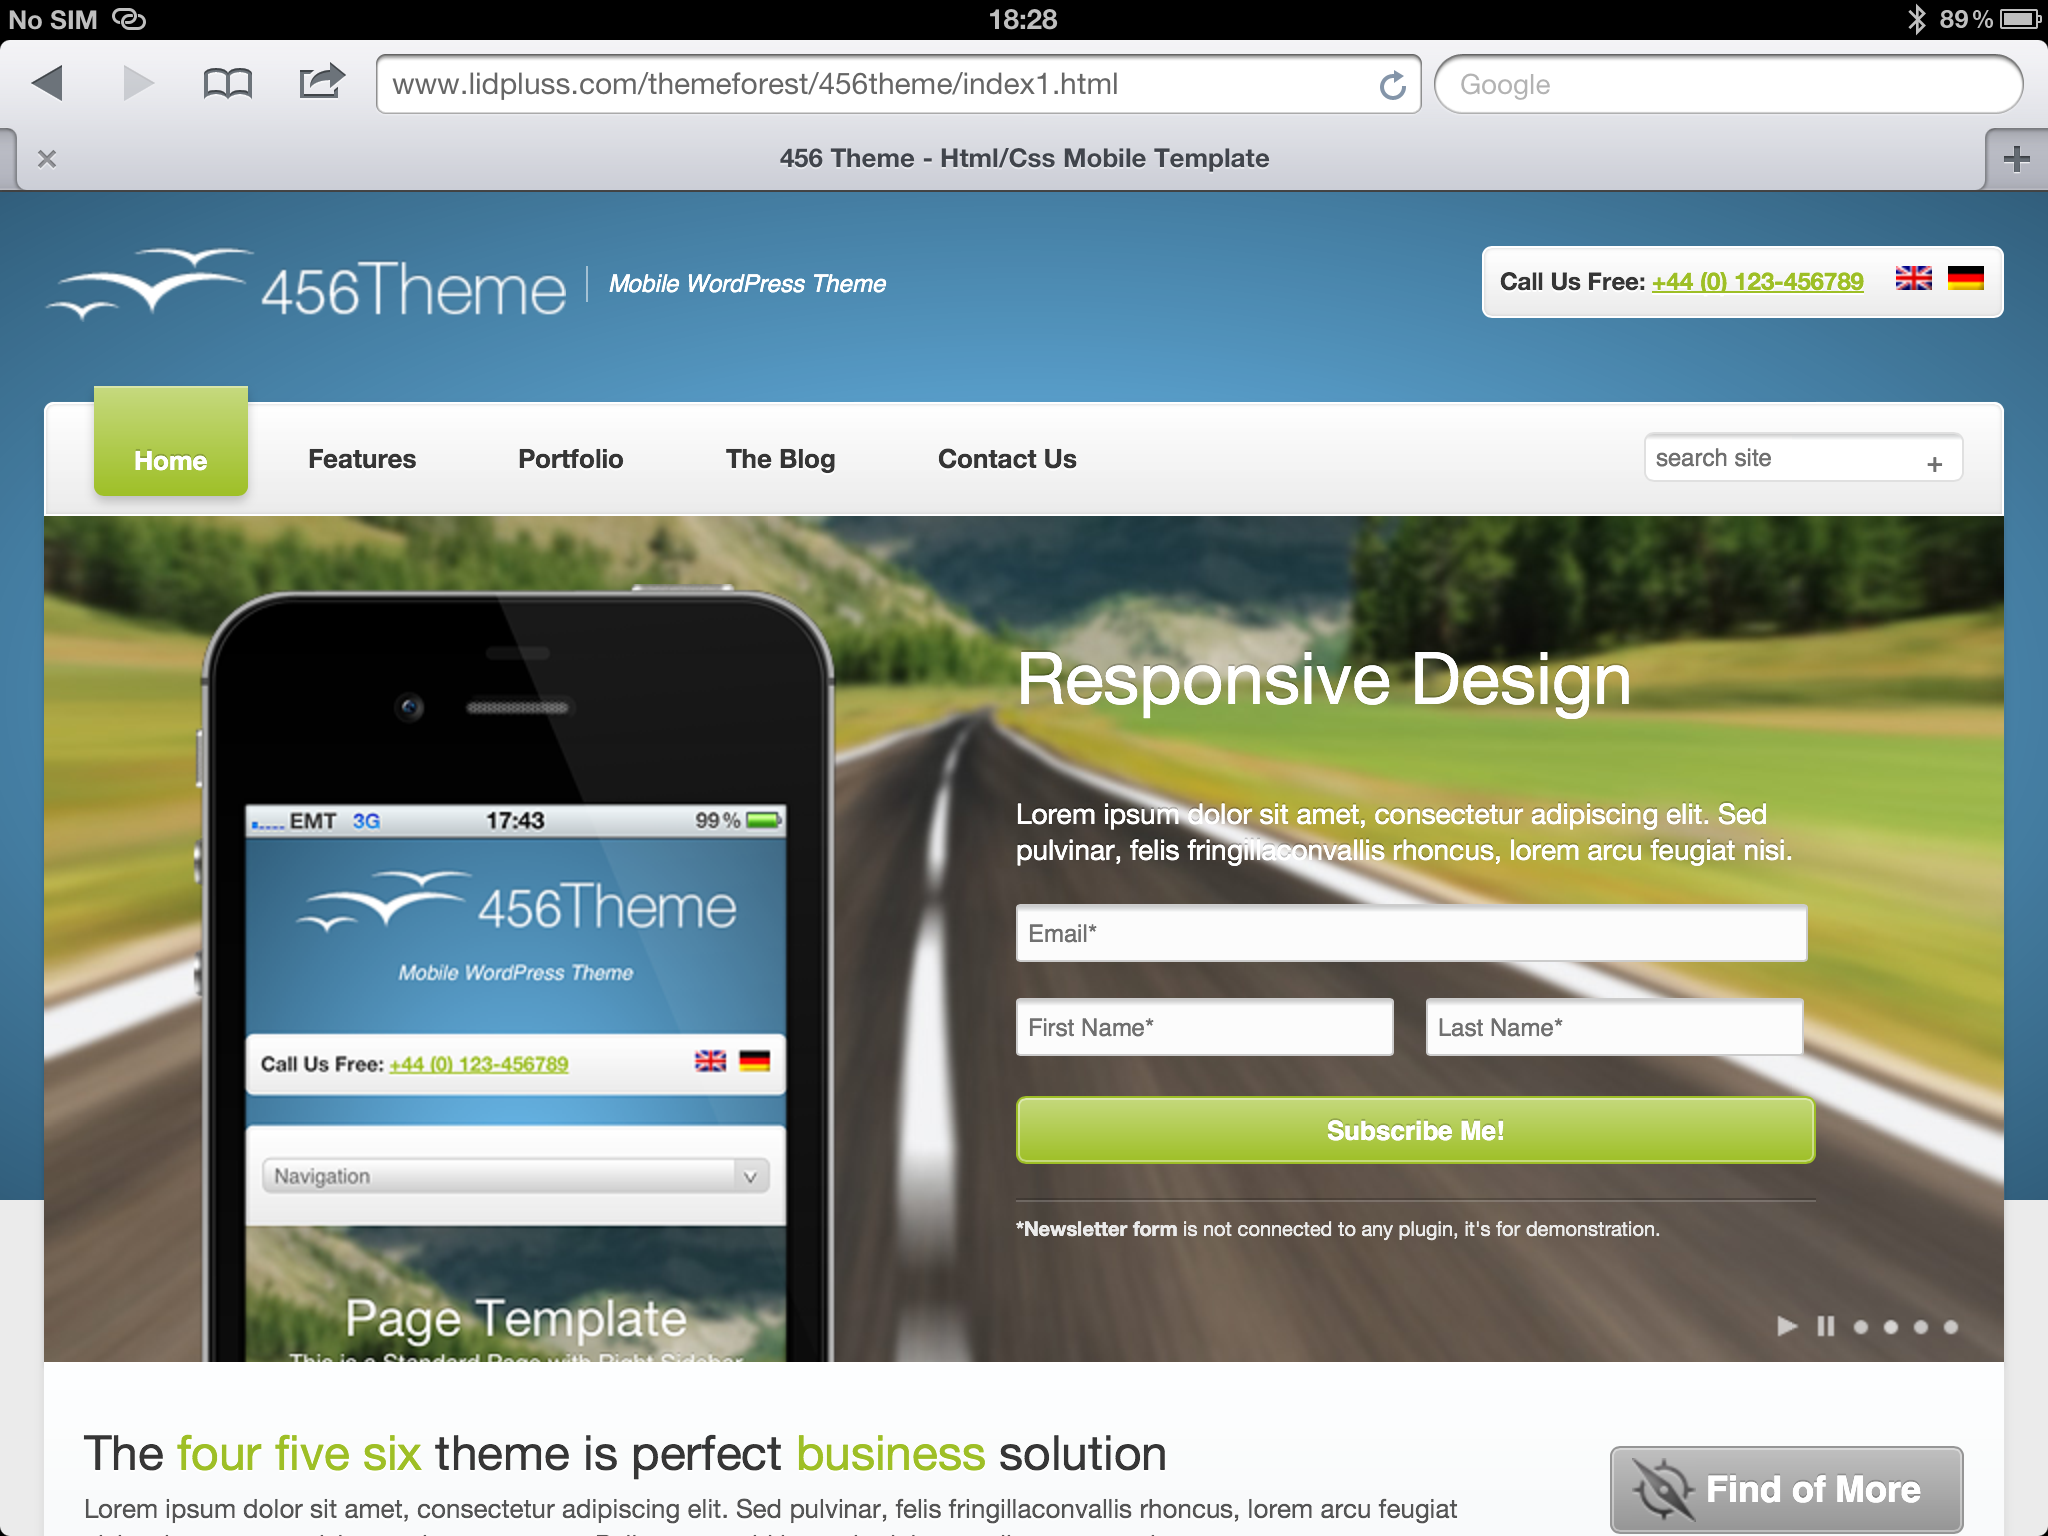 456Theme Premium Responsive Wordpress Theme - ipad front page